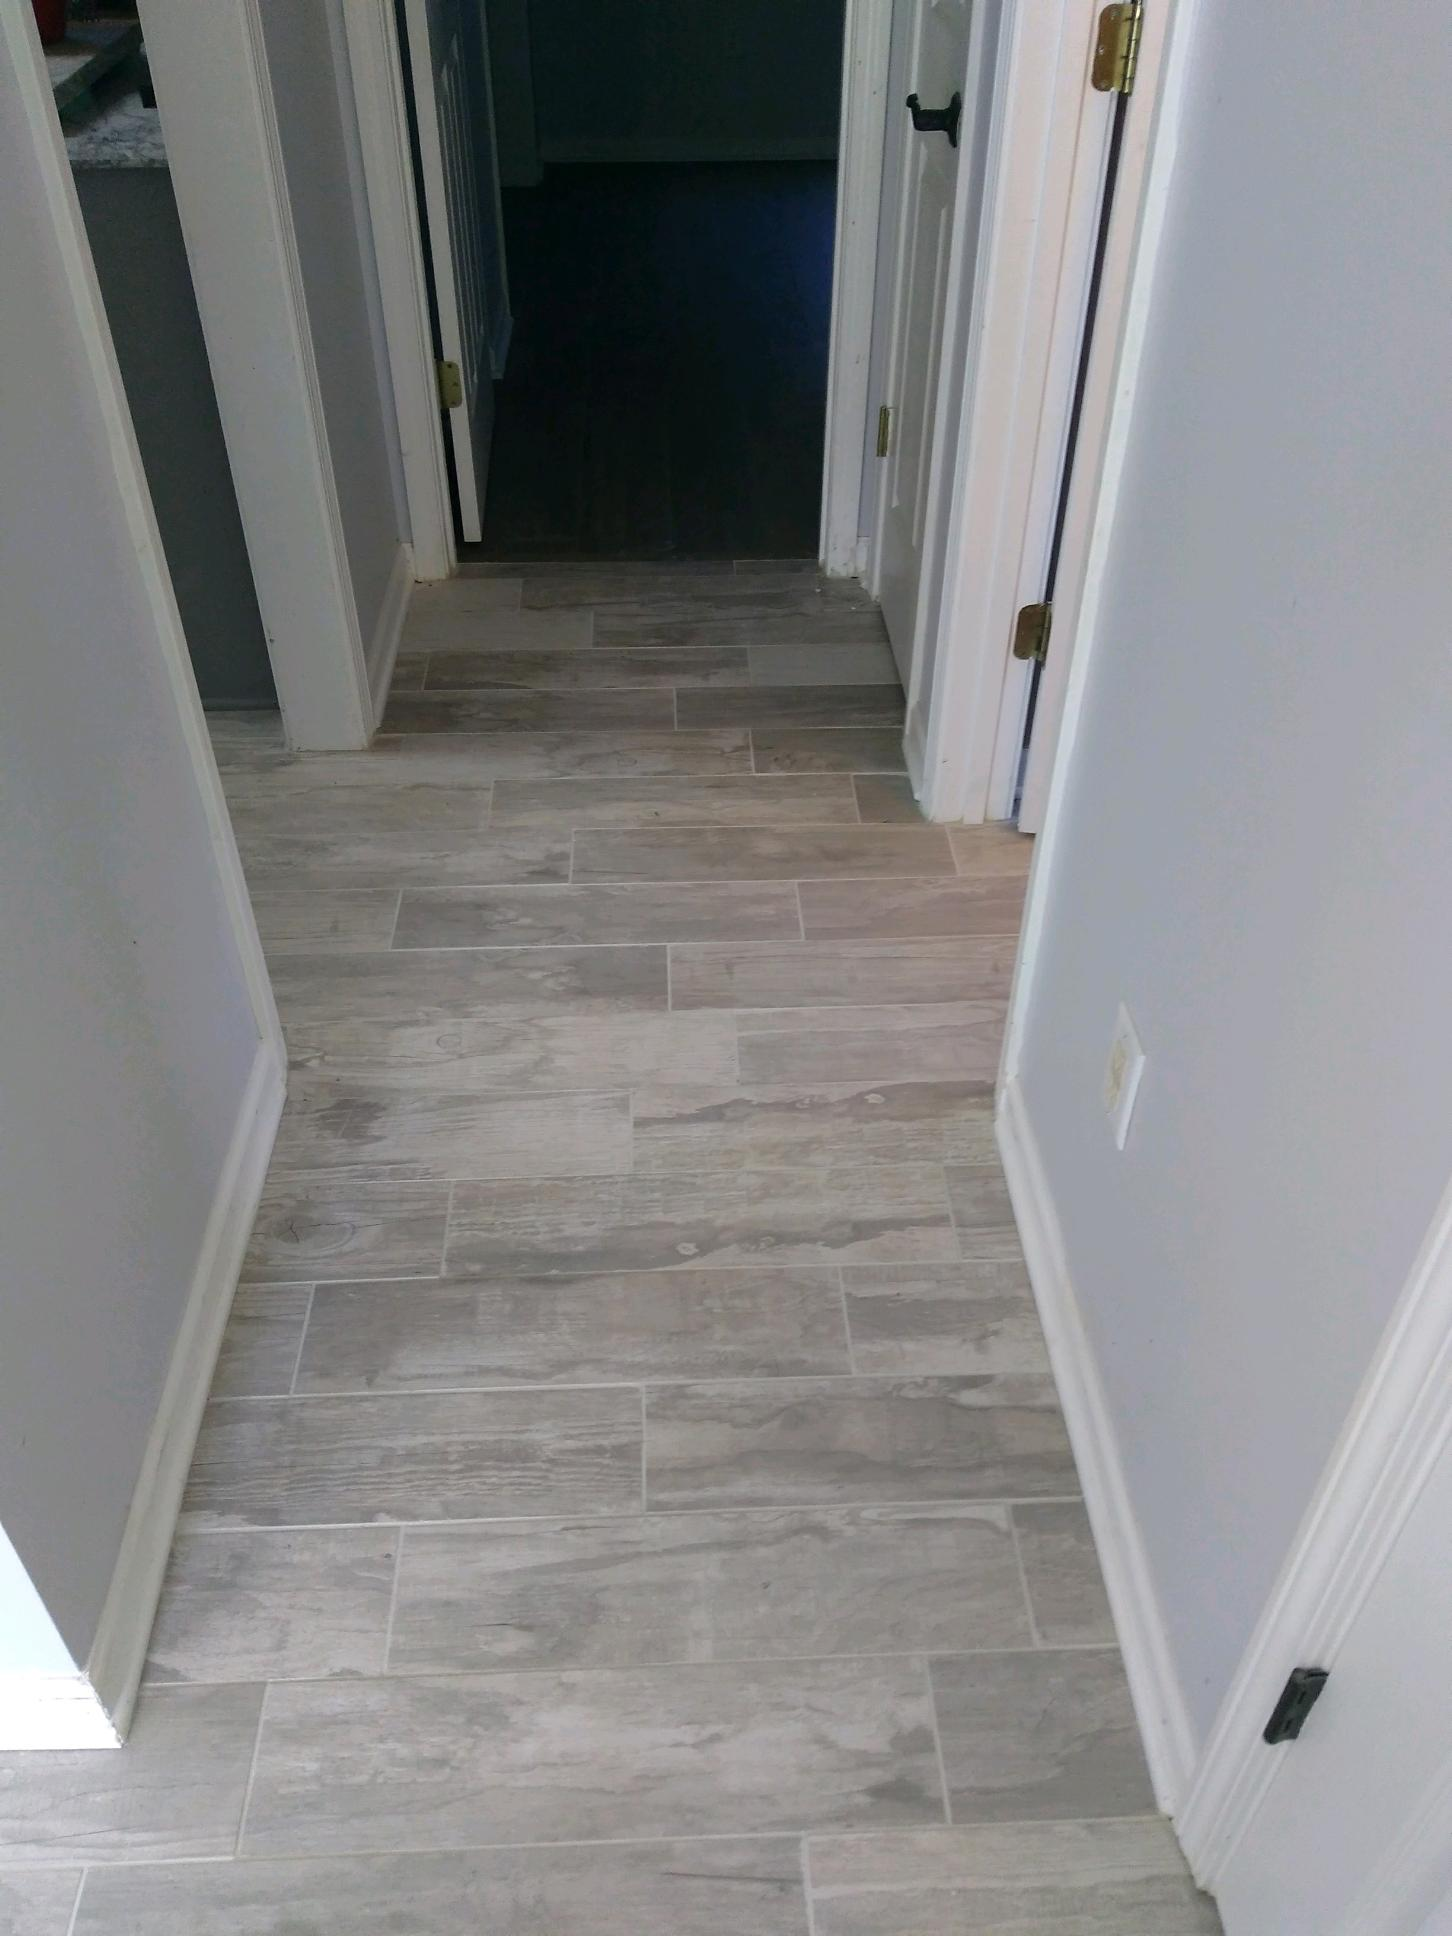 Wood Like Tile in Hallway